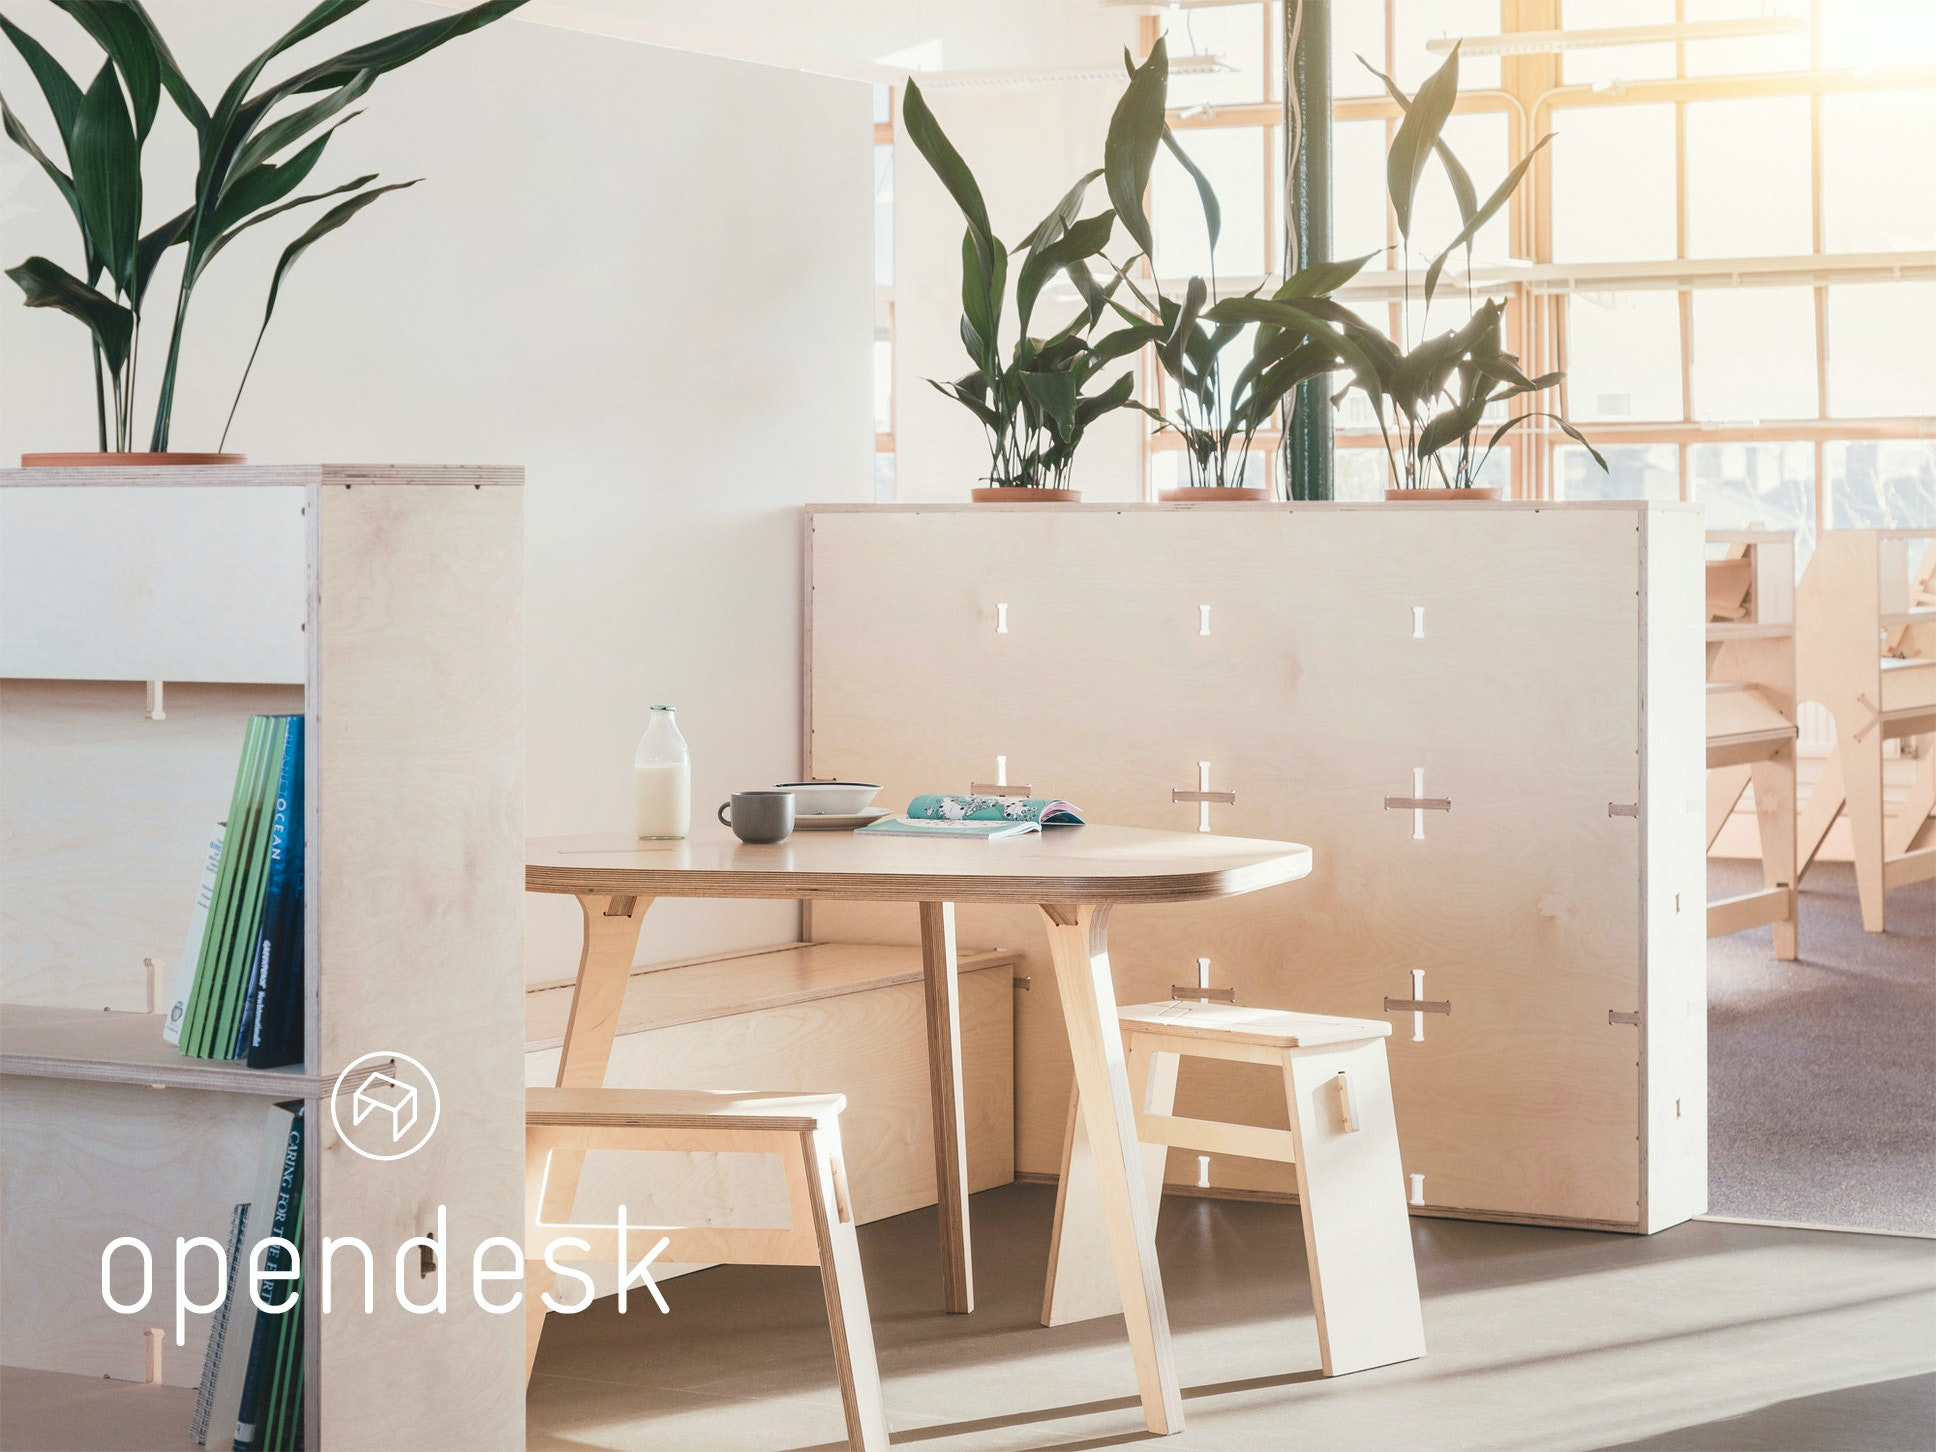 The Greenpeace offices with furniture designed by